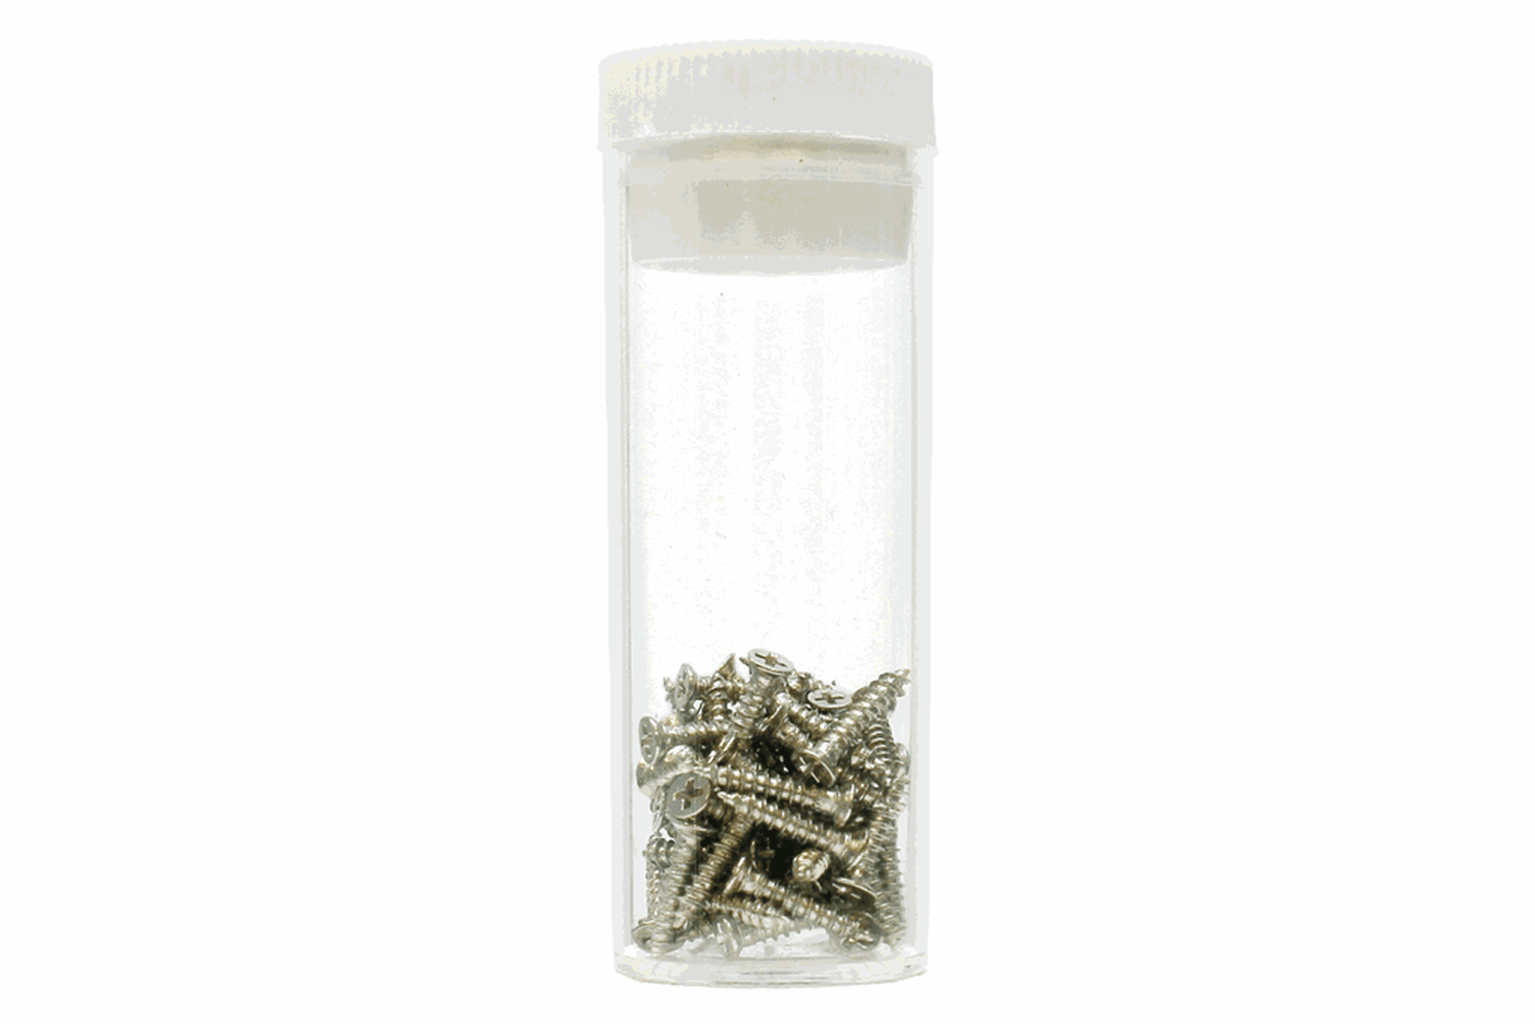 Countersunk Screws 1.5 x 8mm (60 Pieces)